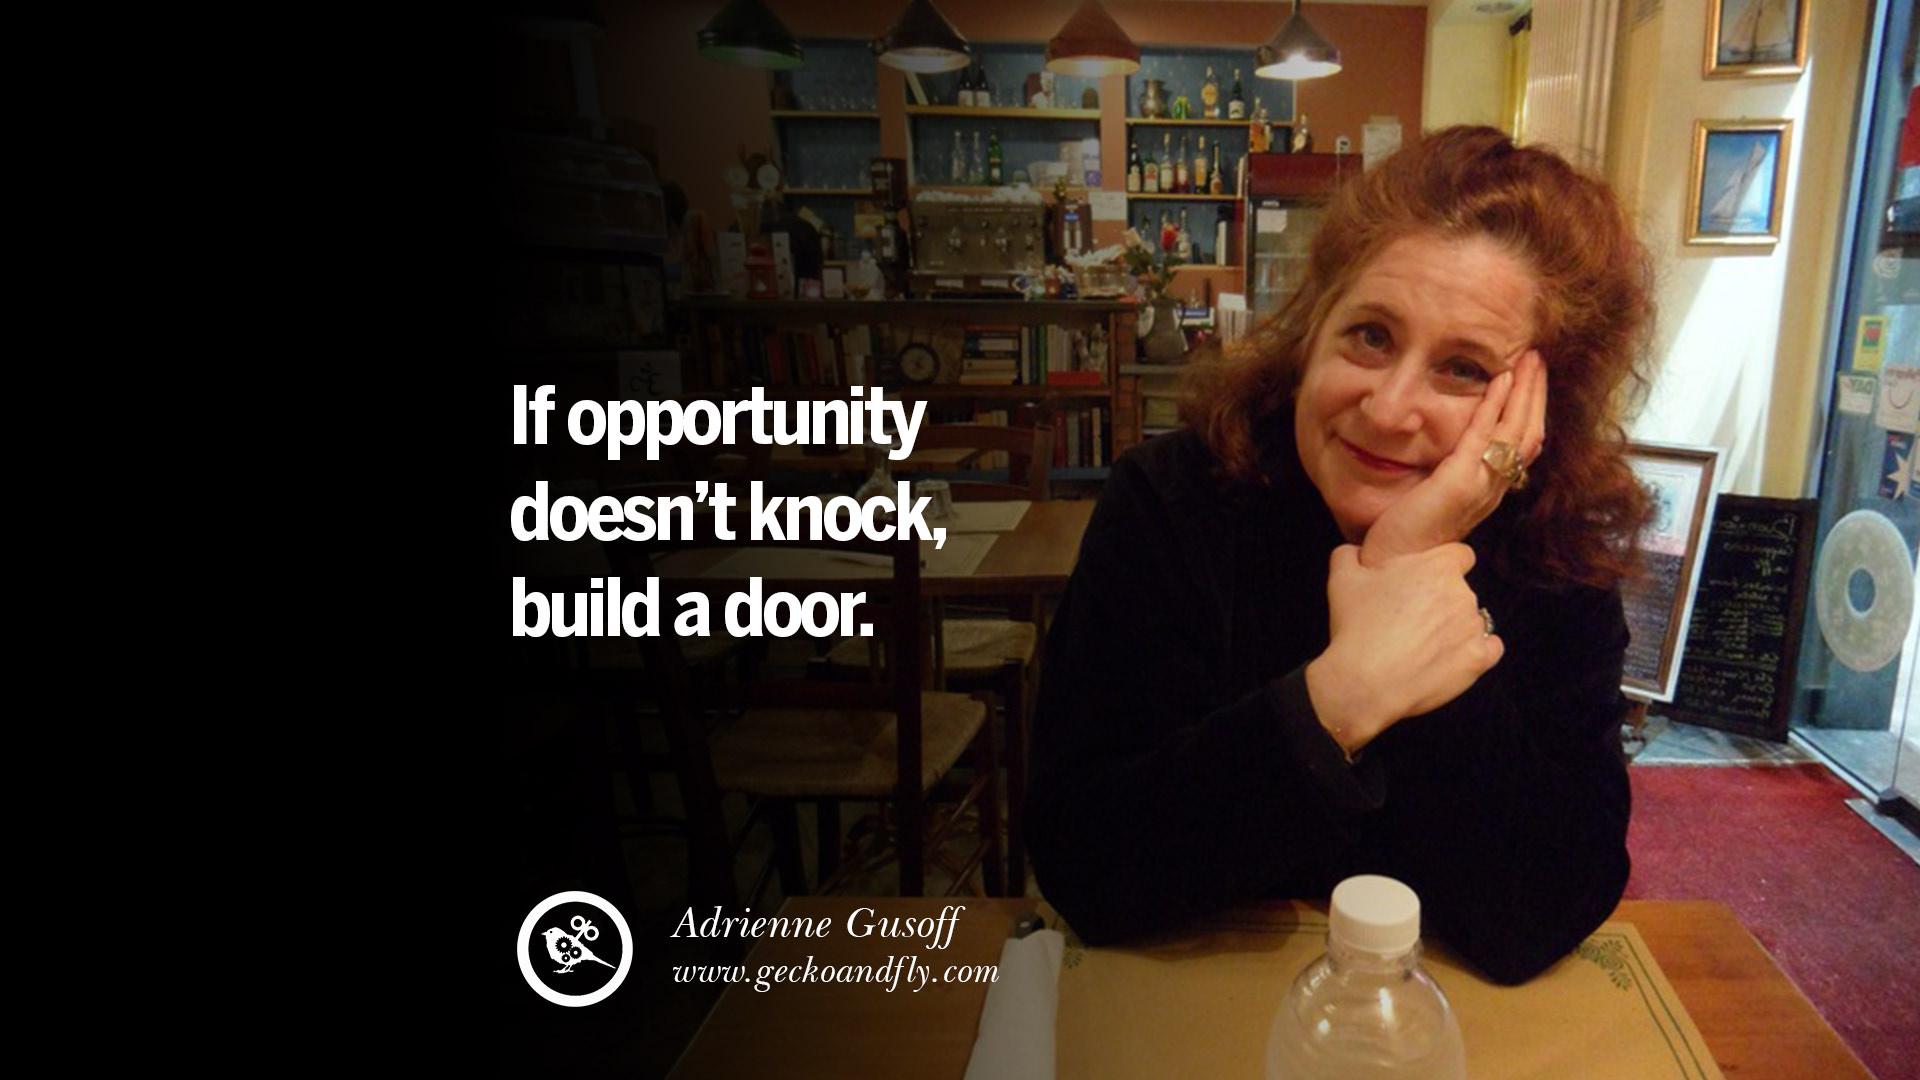 20 motivational poster quotes for small medium startup for Door quotes funny